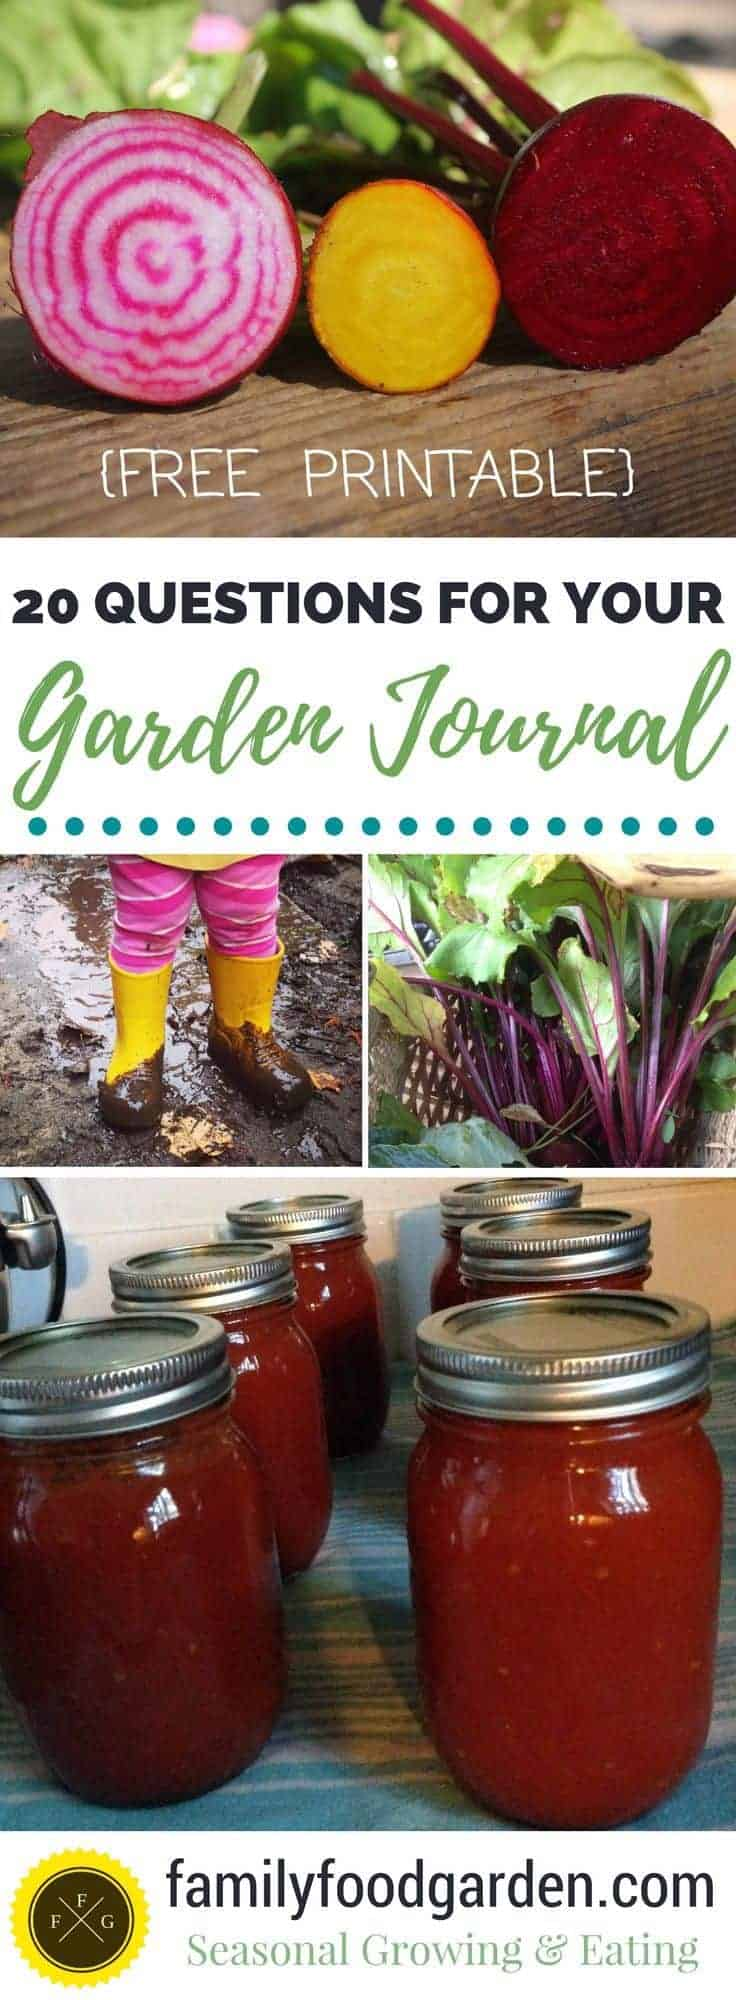 How to keep a garden journal + free garden journal printable